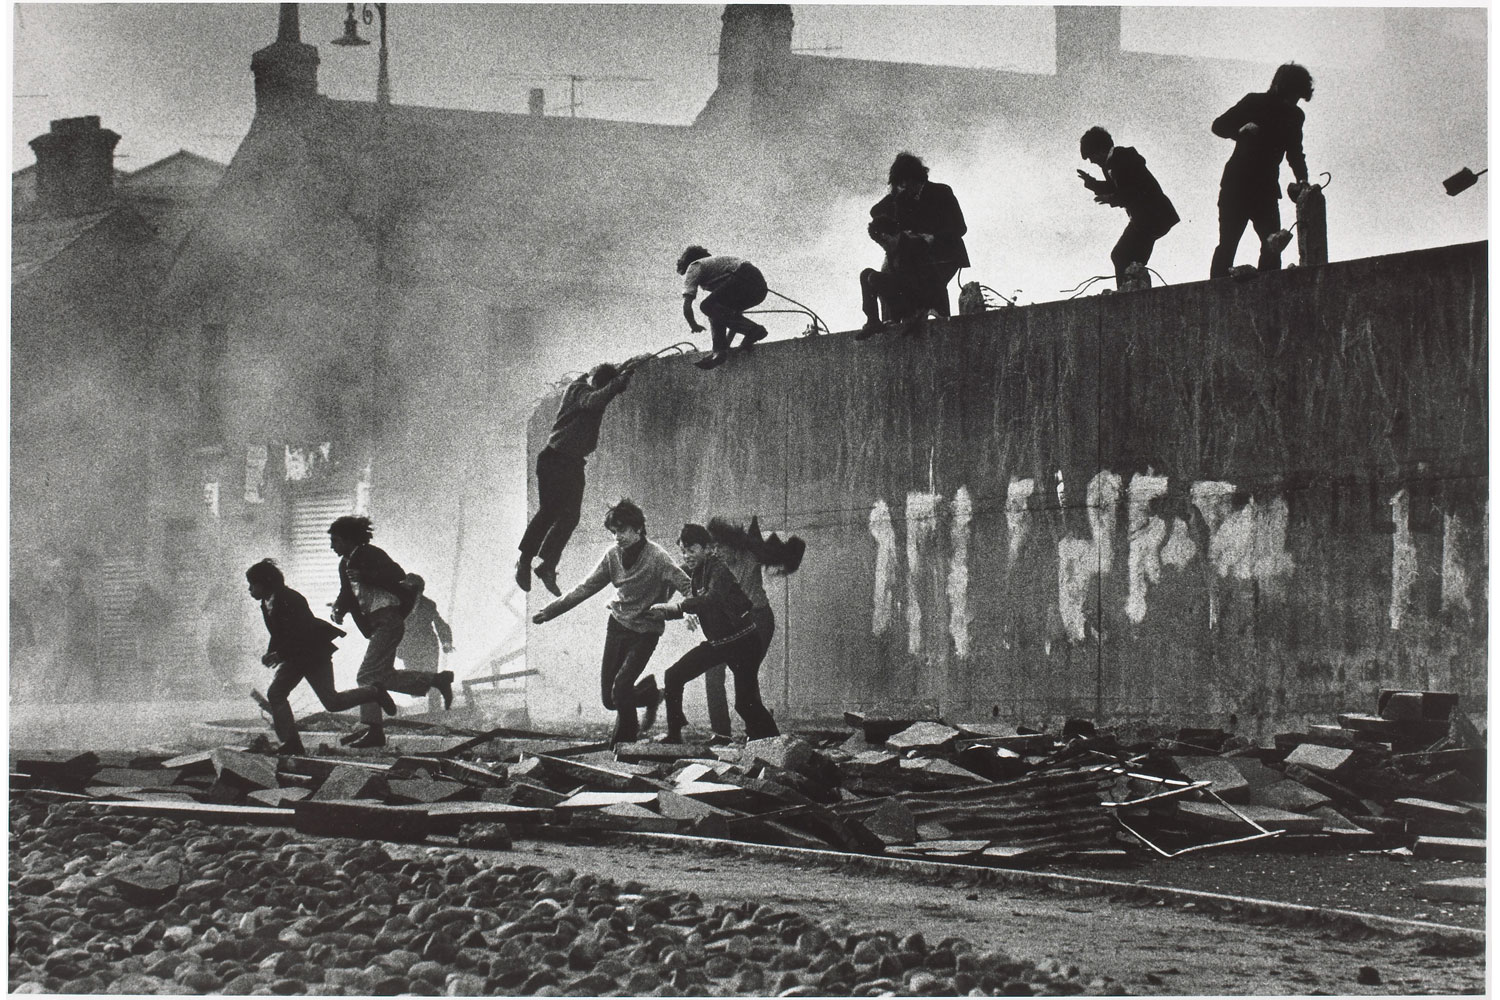 Exhibition.  Don McCullin: A Retrospective.  Winnipeg Art Gallery, Winnipeg, Canada. November 1, 2013 - January 12, 2014. Pictured: Catholic youth escaping a CS gas assault in the Bogside, Londonderry, Northern Ireland, 1971.